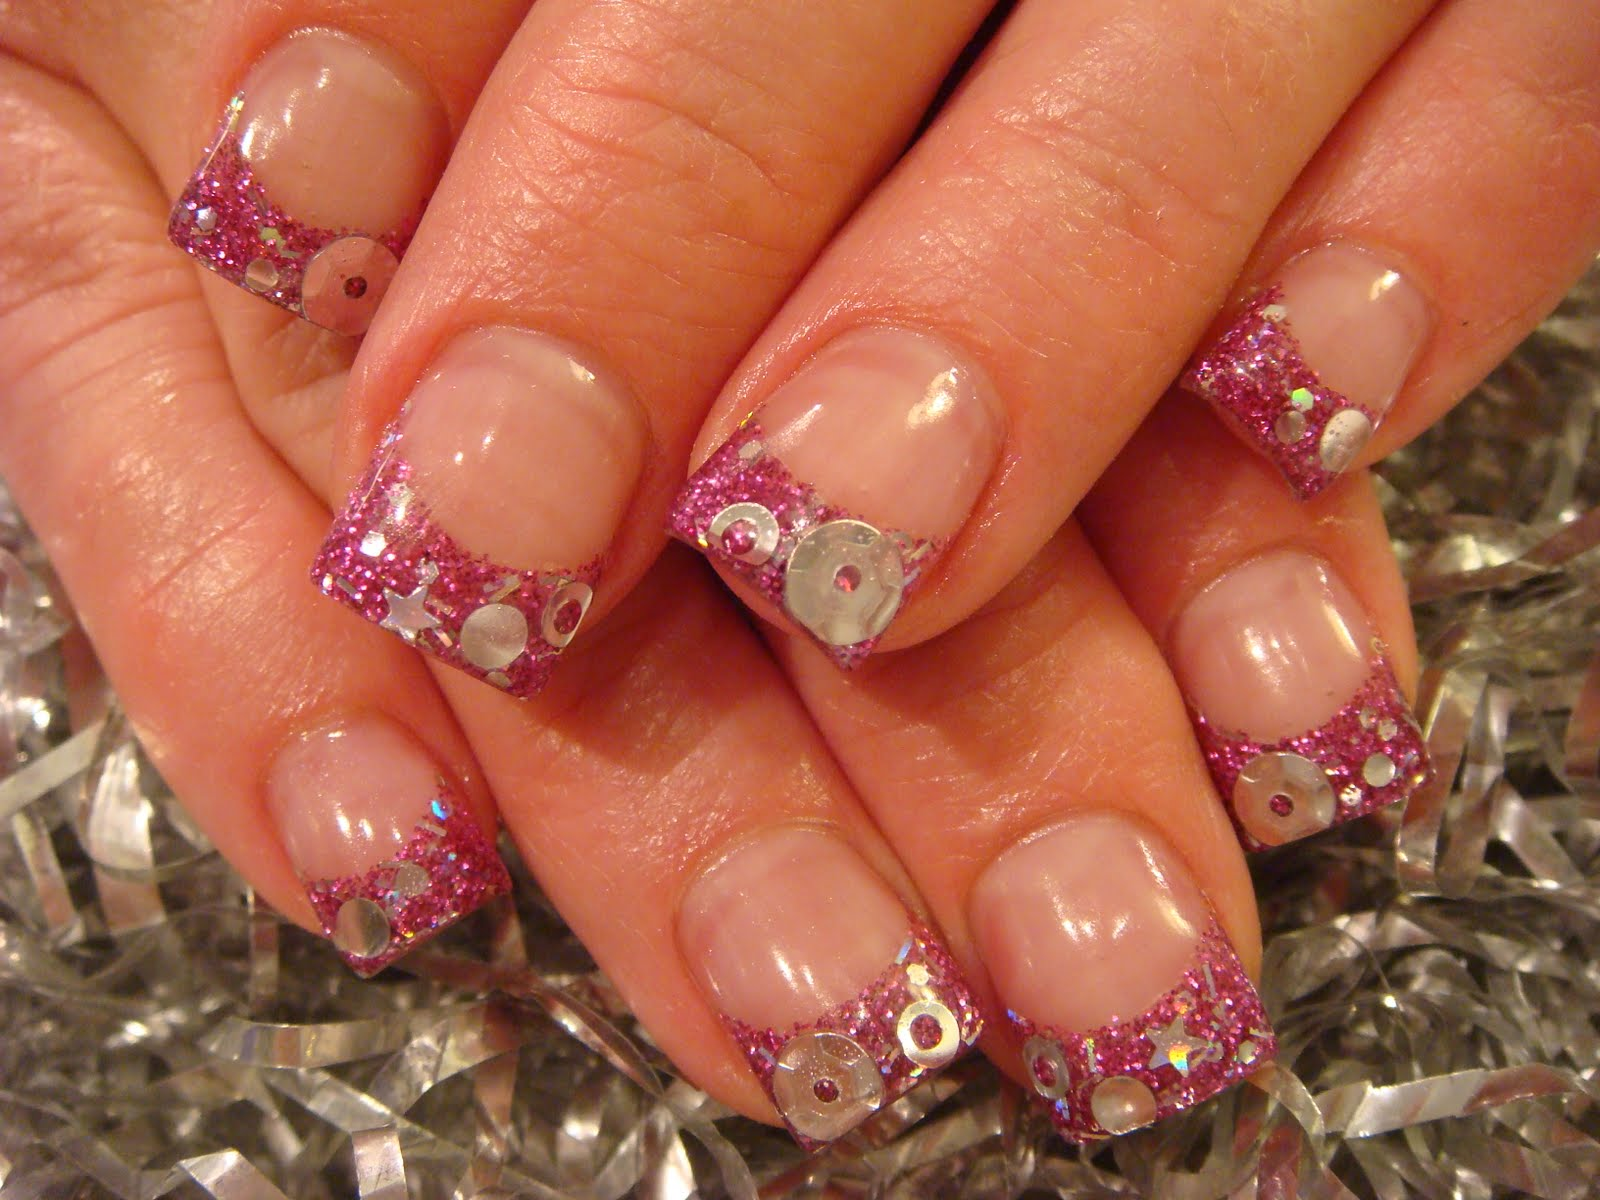 The Amusing Different nail designs 2015 Photograph